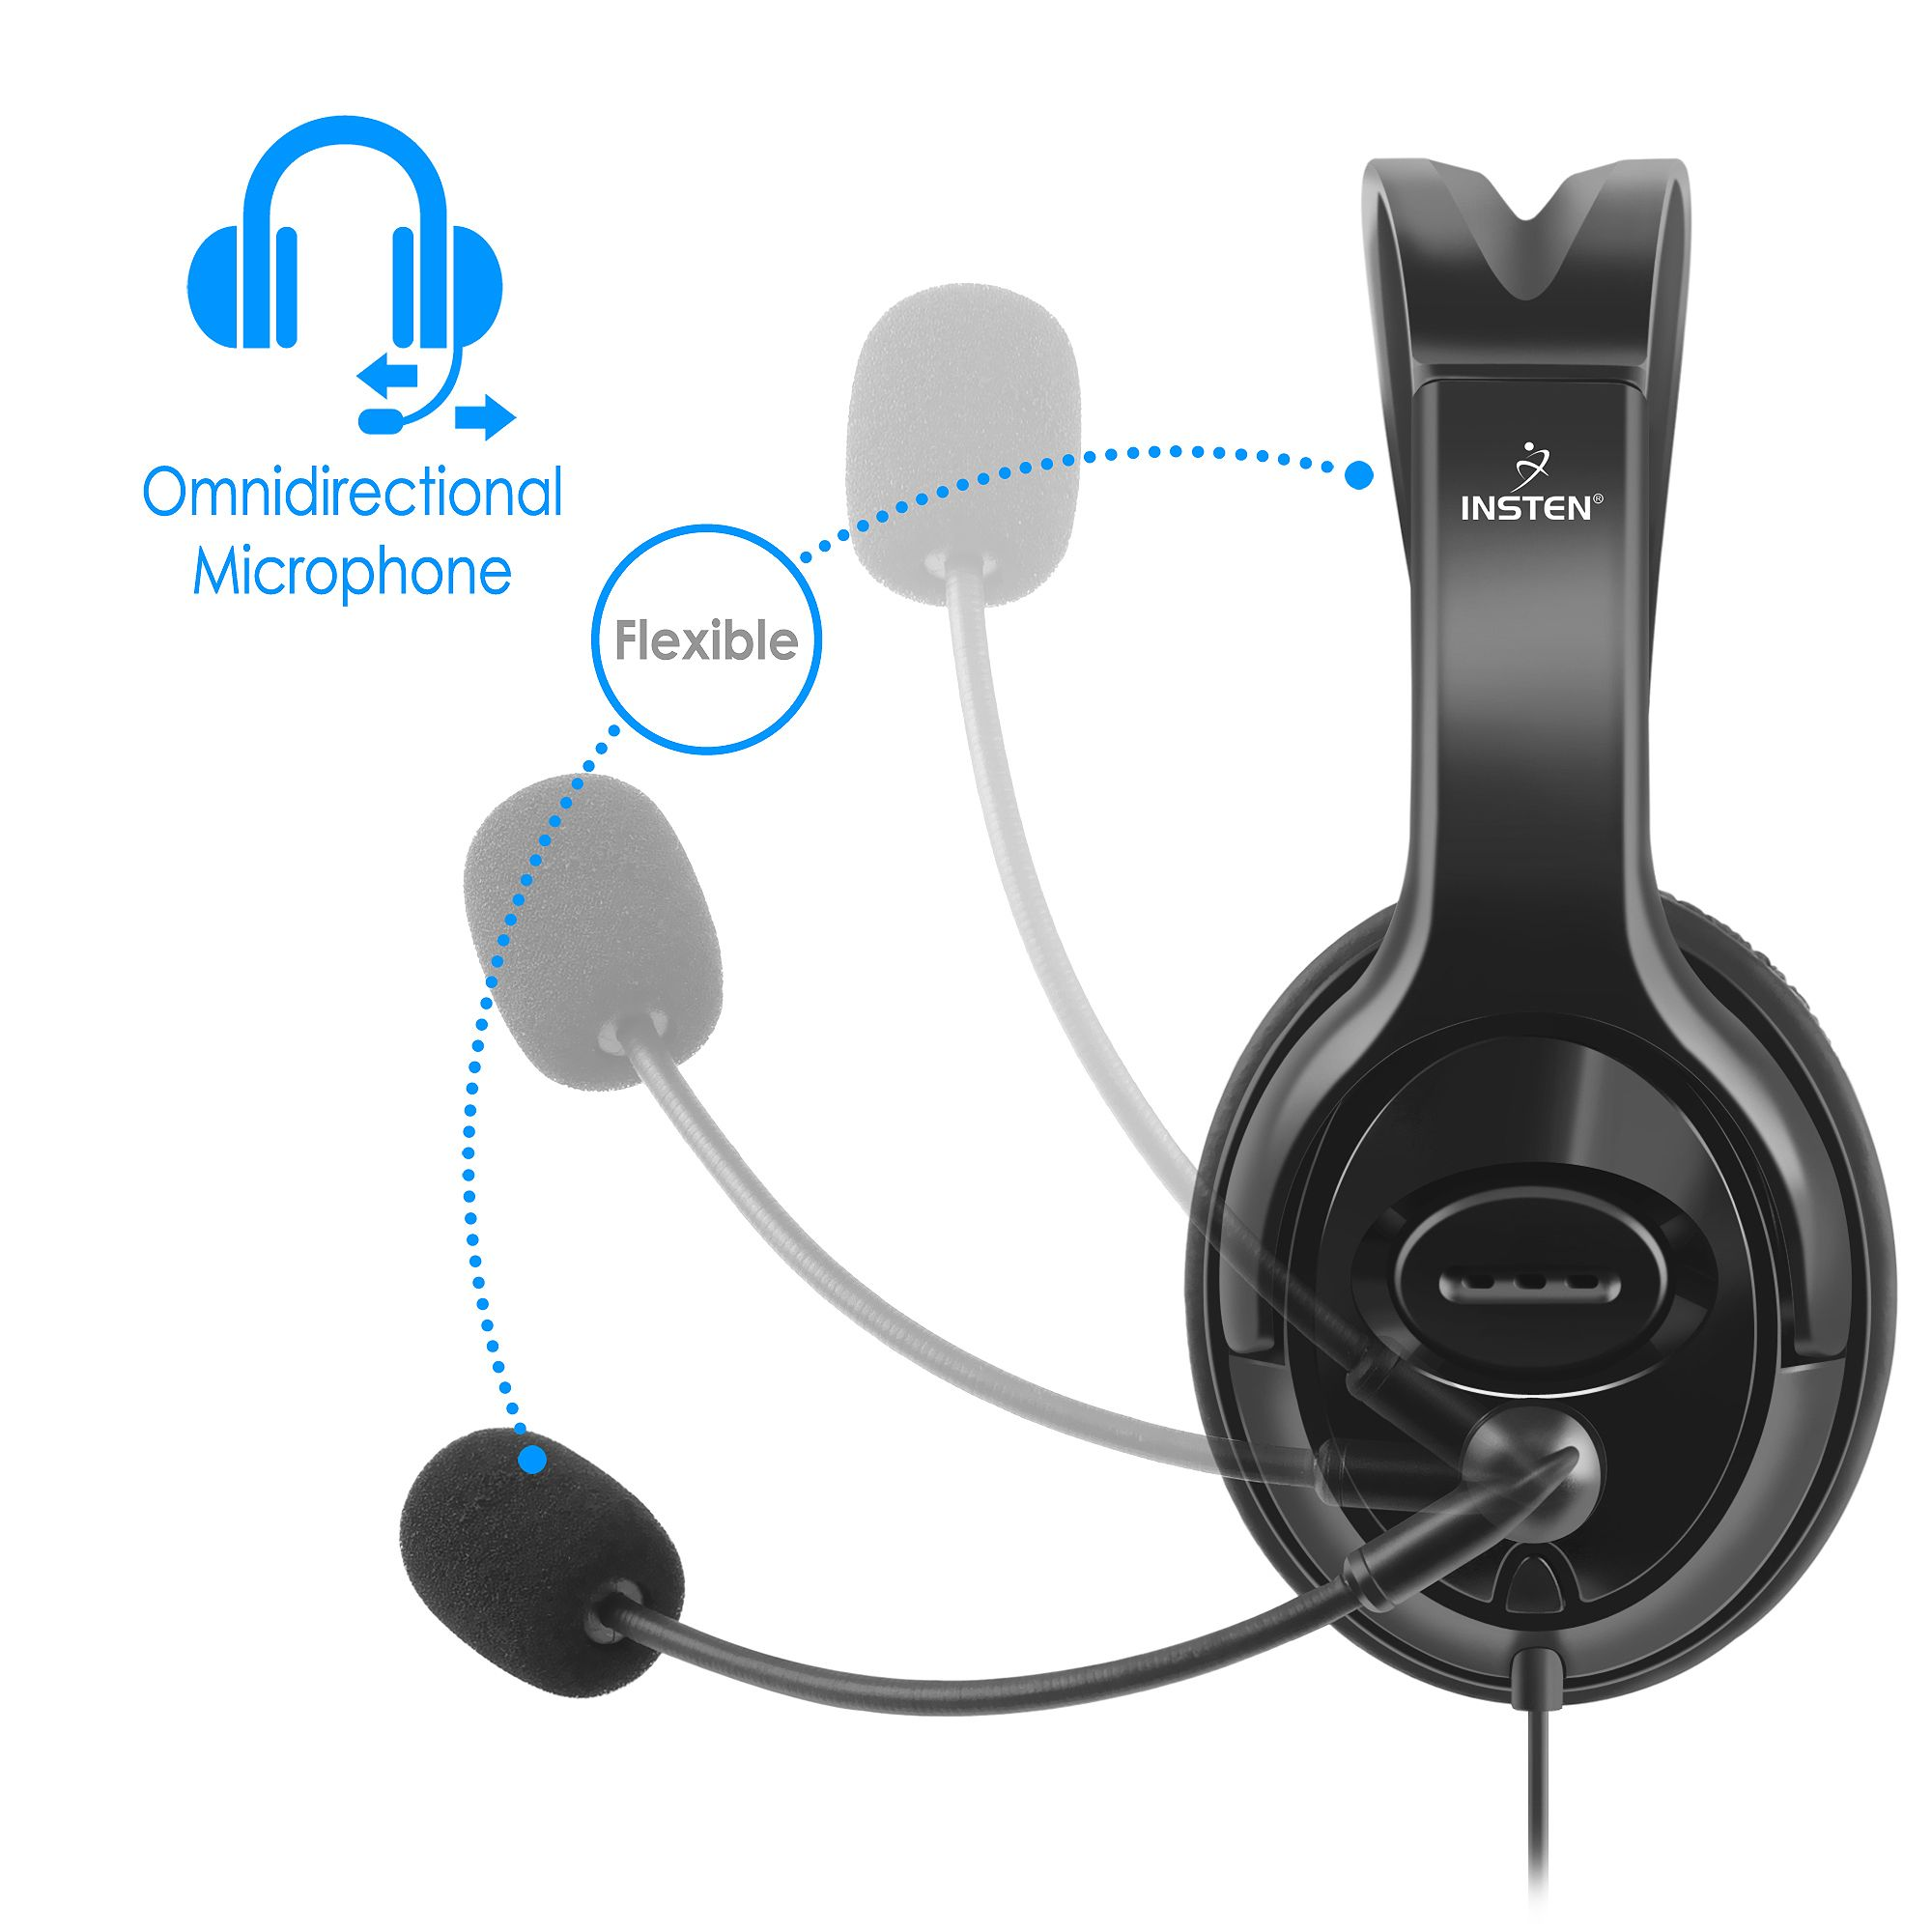 Wired Gaming Headset Earphones With Mic Microphone Stereo Bass Fleksibel Earphone Ipad Air 2 Dinner For Sony Ps4 Playstation 4 Gamers